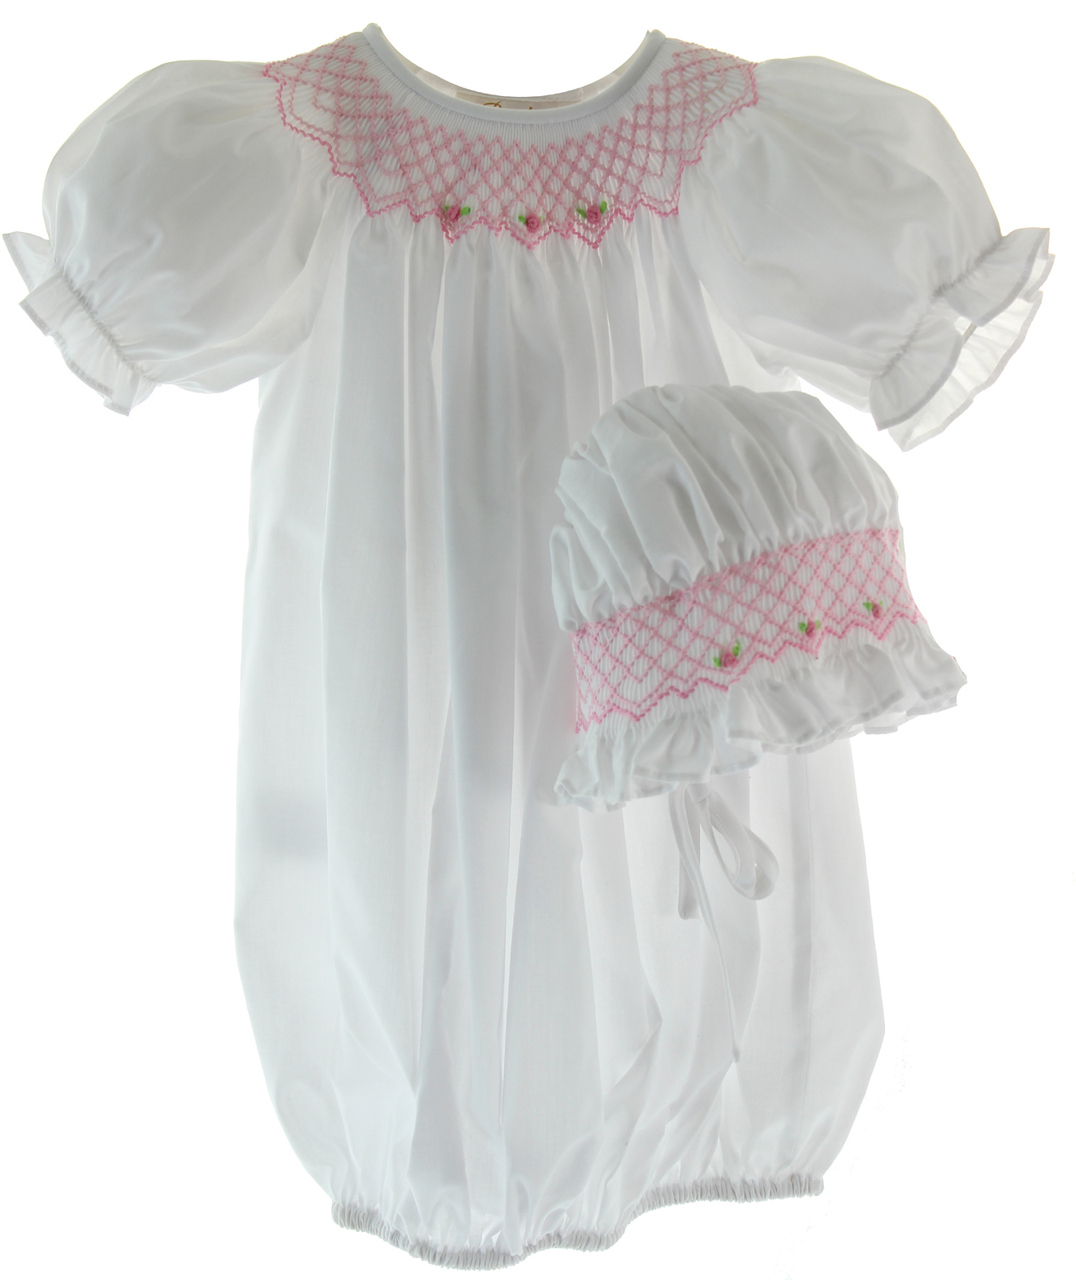 Newborn Girls White Pink Smocked Take Home Gown & Bonnet Set